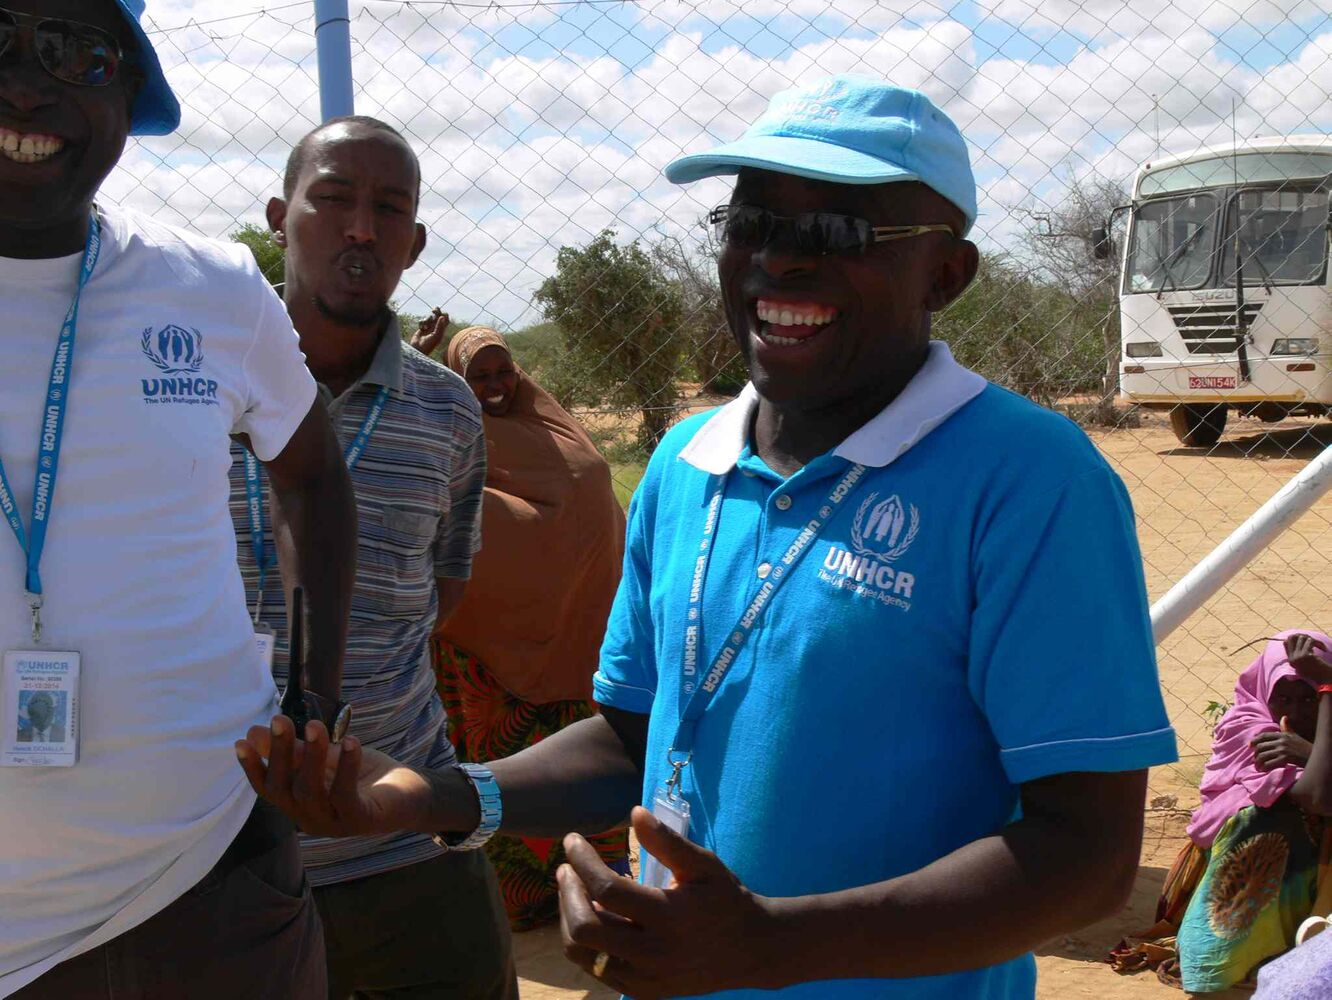 UNHCR staff at the registration centre at Ifo 2 refugee camp in Dadaab. The staff are smiling because refugees who've lived at the camp for months are finally being registered after the Kenyan government lifted the ban on new refugee registrations. (Carol Sanders / Winnipeg Free Press)